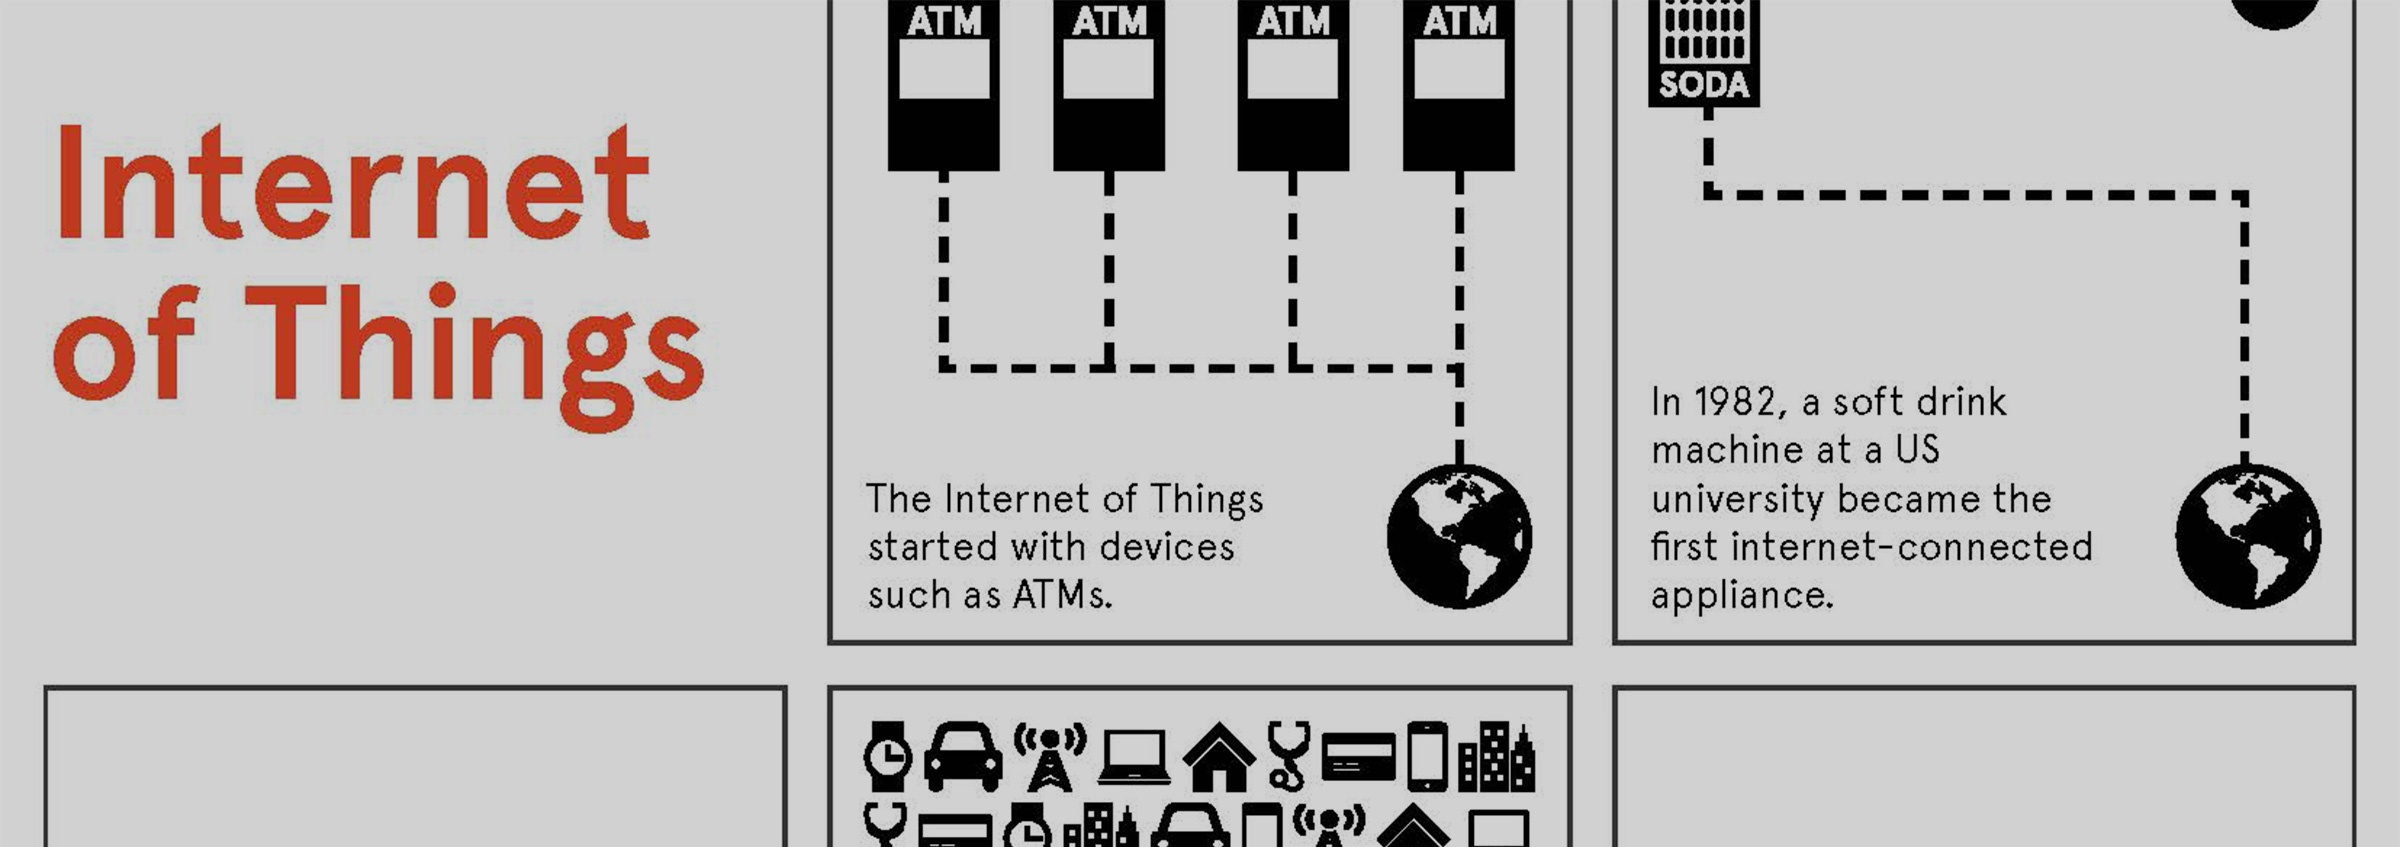 Internet of Things infographic UofS.jpg